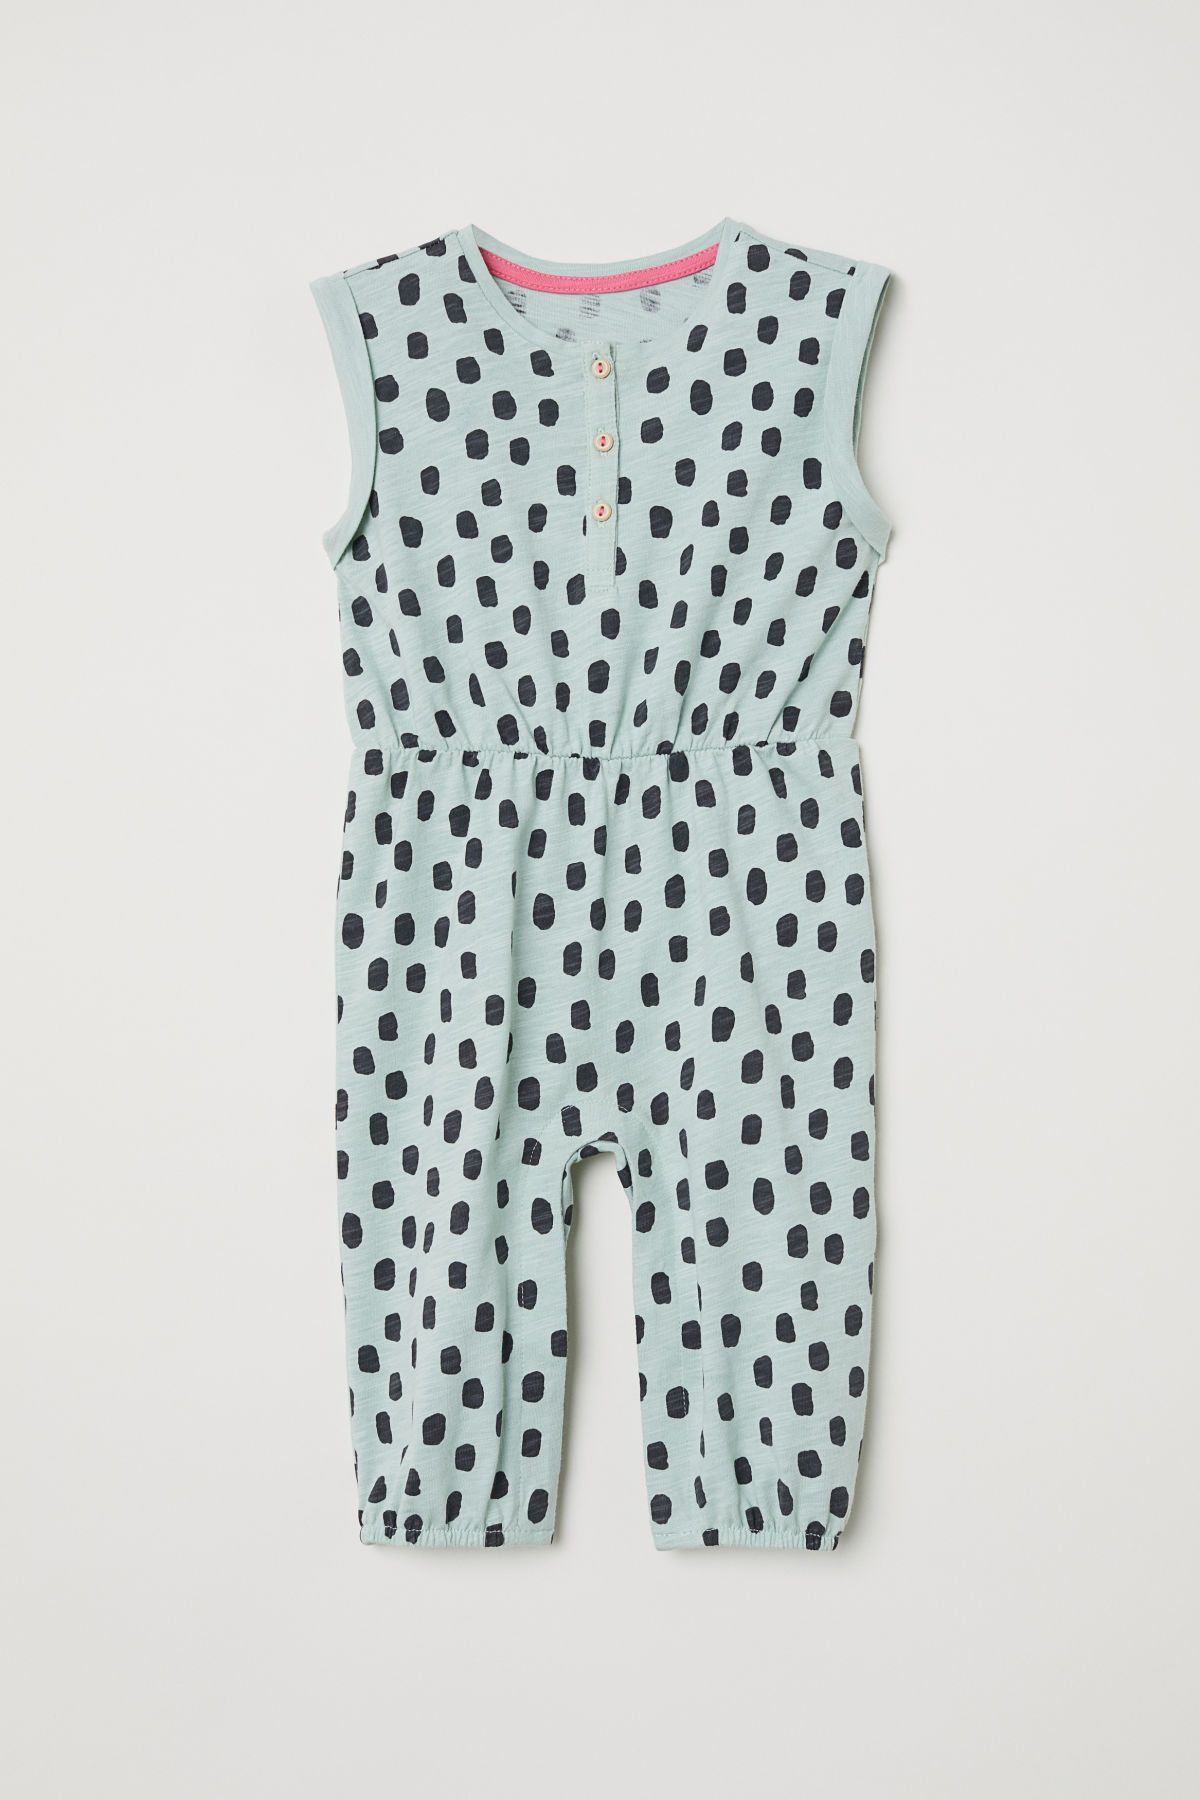 3f89d477b8 Dusky green patterned. Jumpsuit in cotton slub jersey with a printed pattern.  Buttons at top